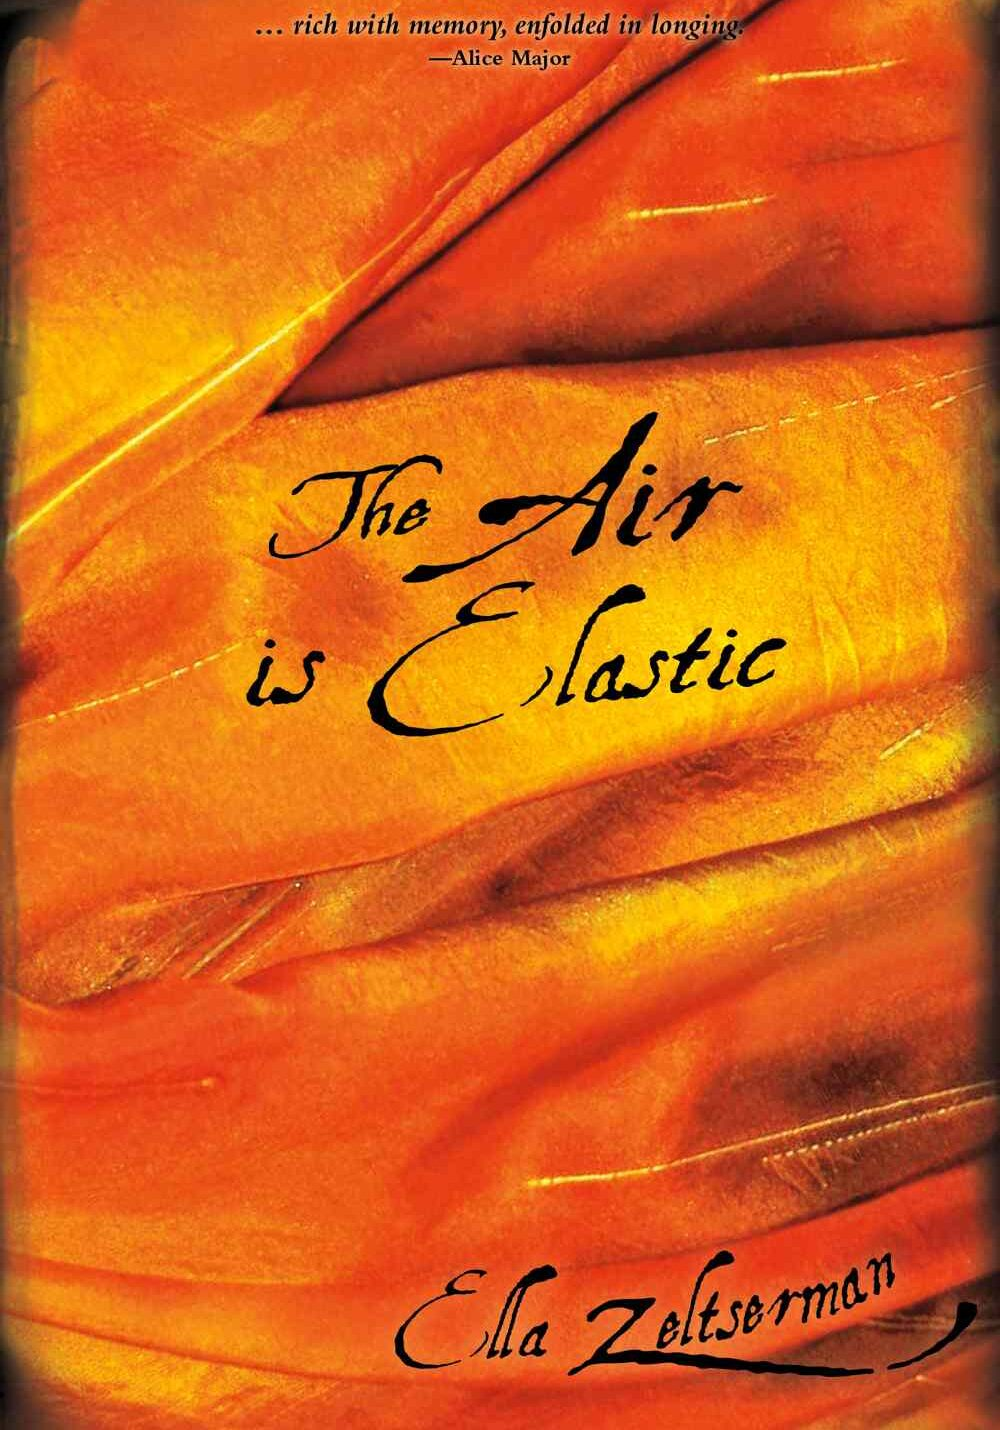 Cover of The Air is Elastic, poetry collection by Ella Zeltserman